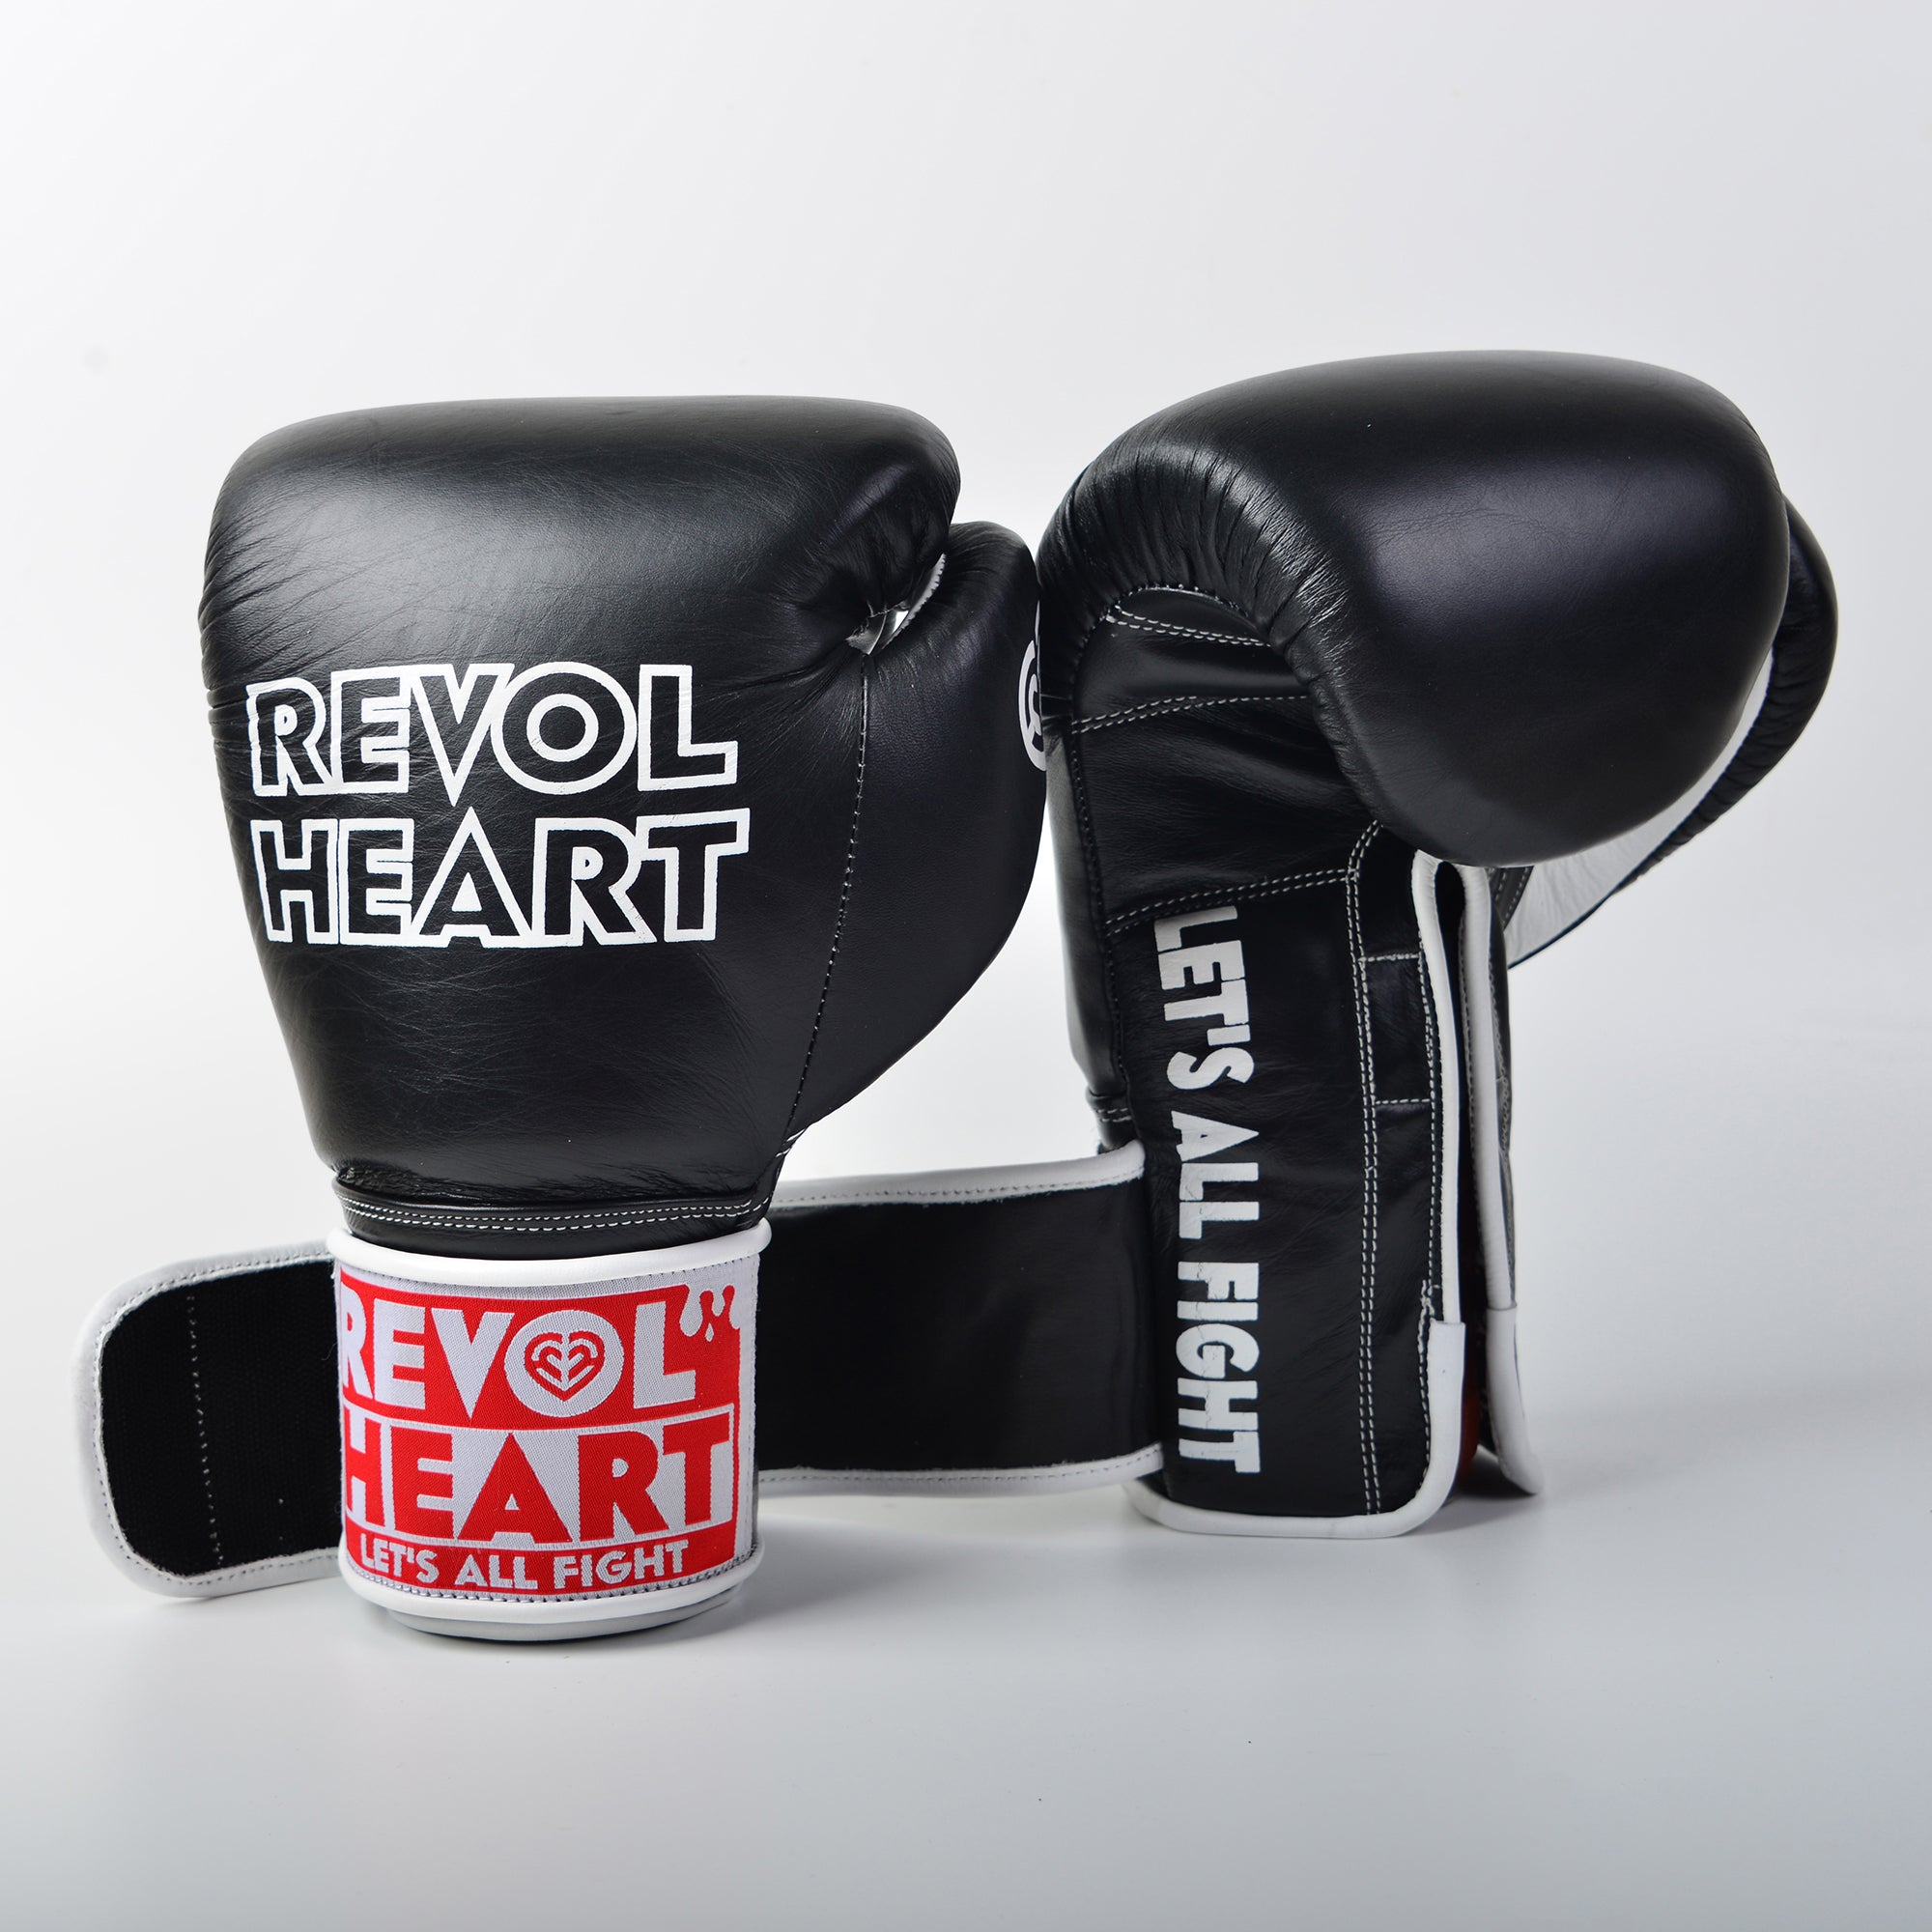 EVOLVE BOXING GLOVE - 12 oz CLASSIC